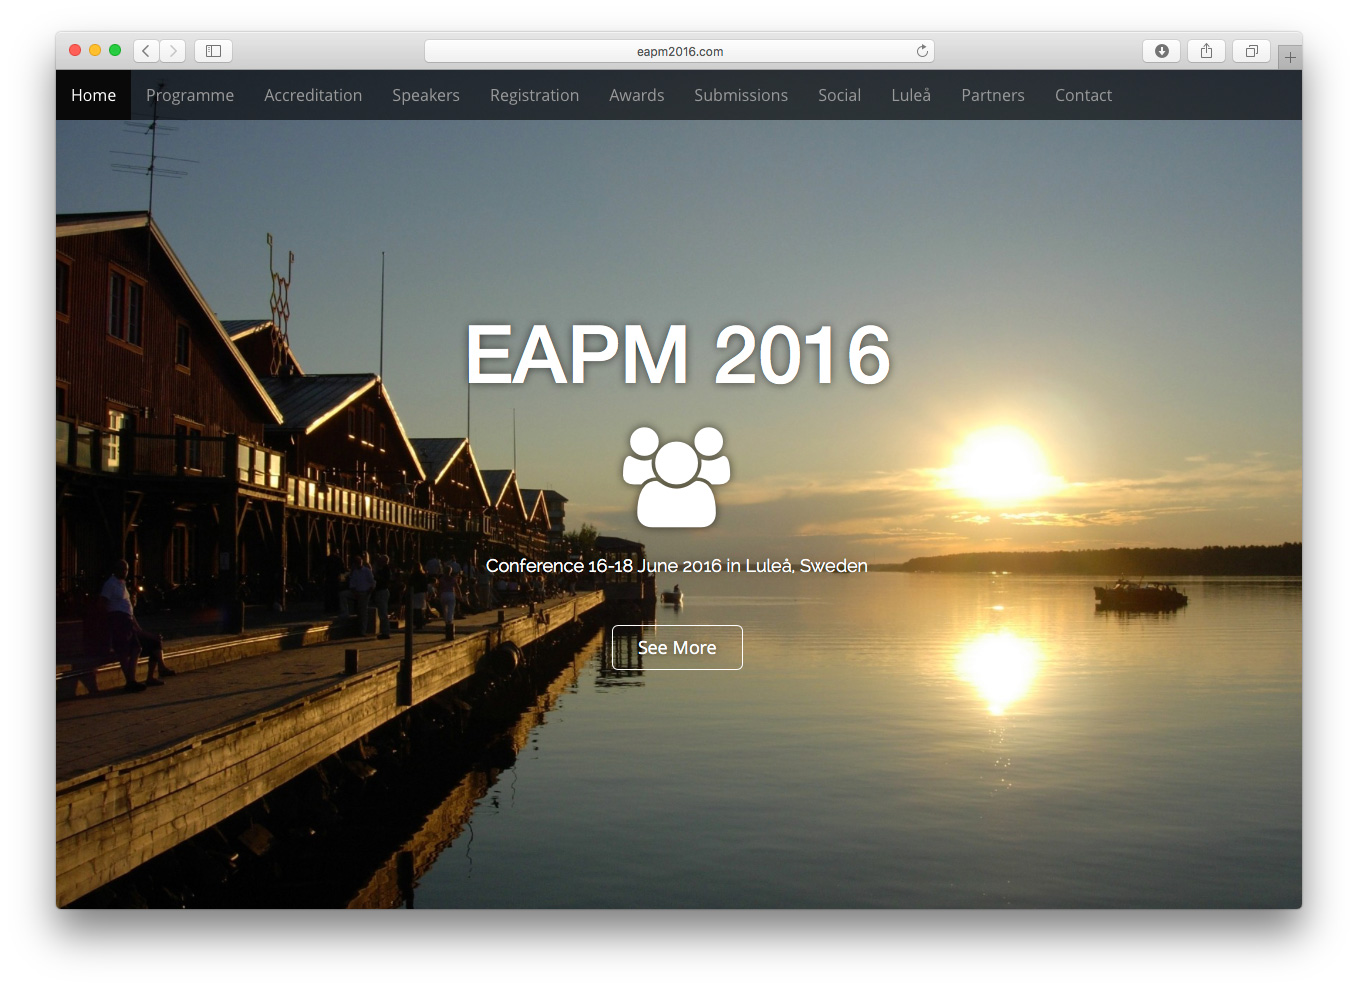 EAPM 2016